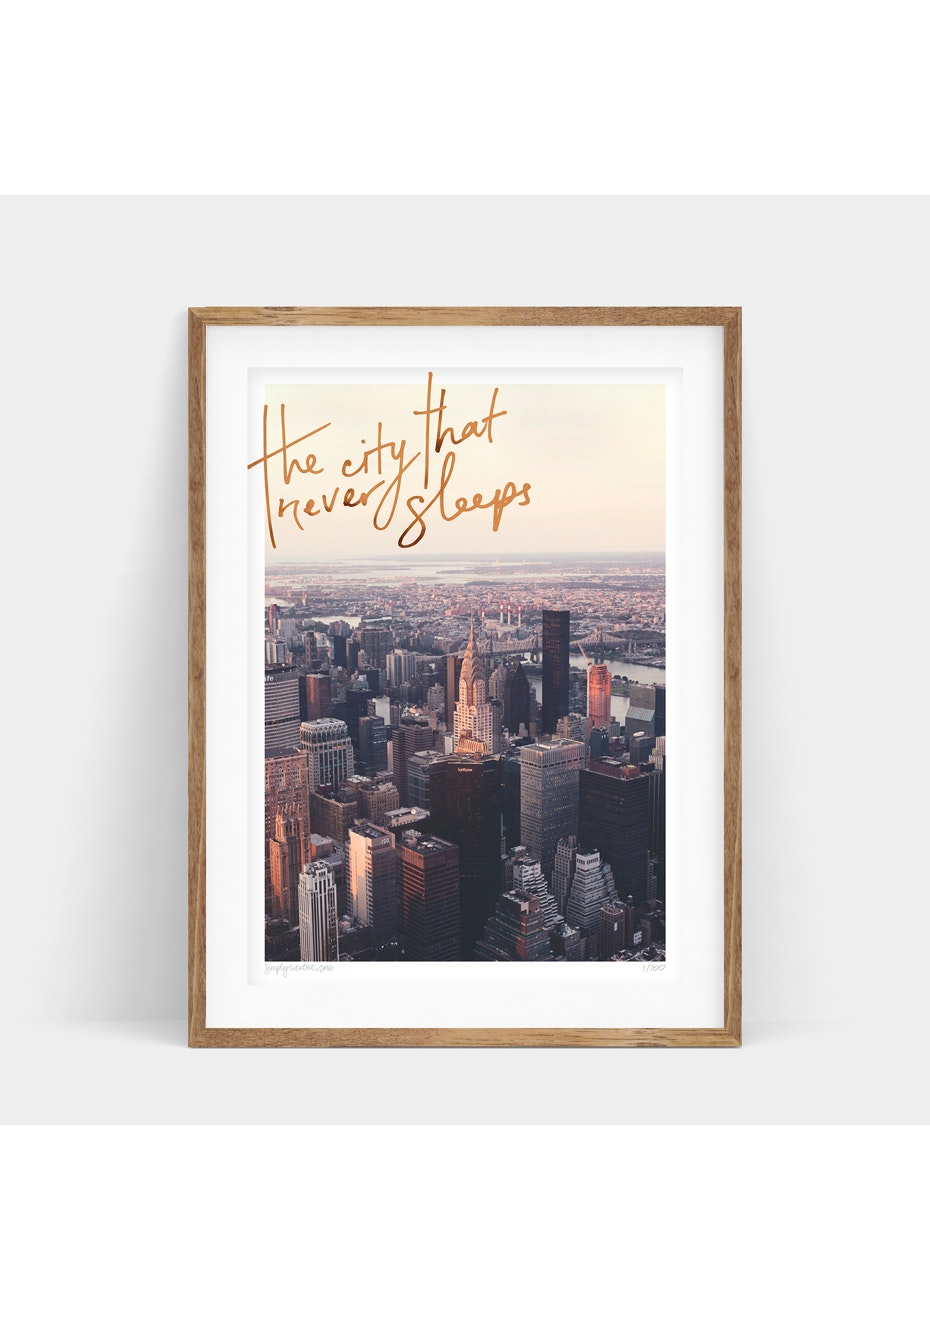 Simply Creative - New York - A3 Copper Foil Limited Edition  Print